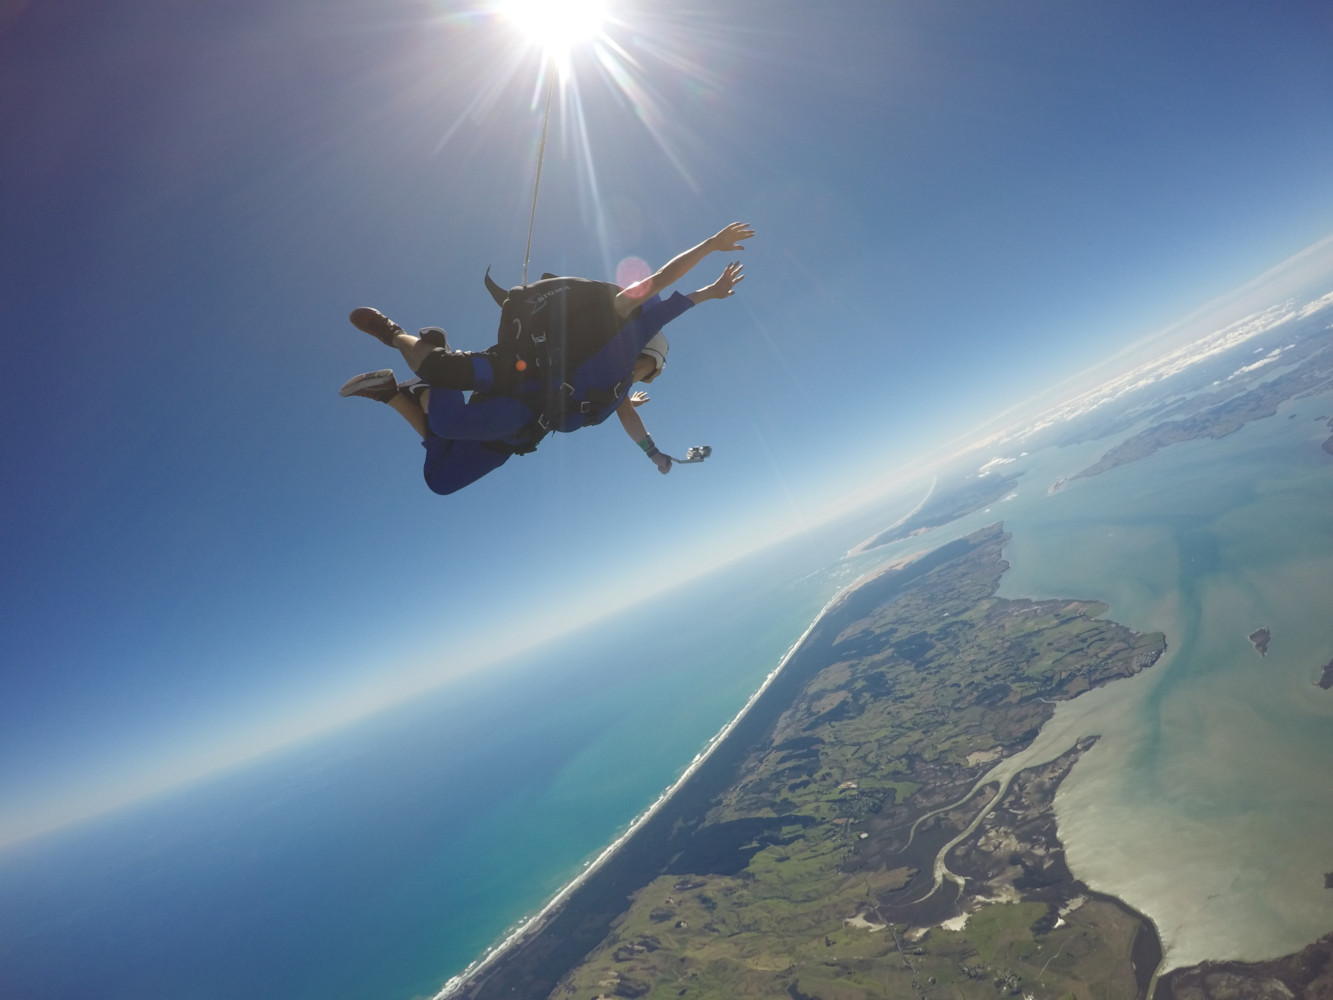 Tandem skydivers high above Kaipara Harbour and South Head